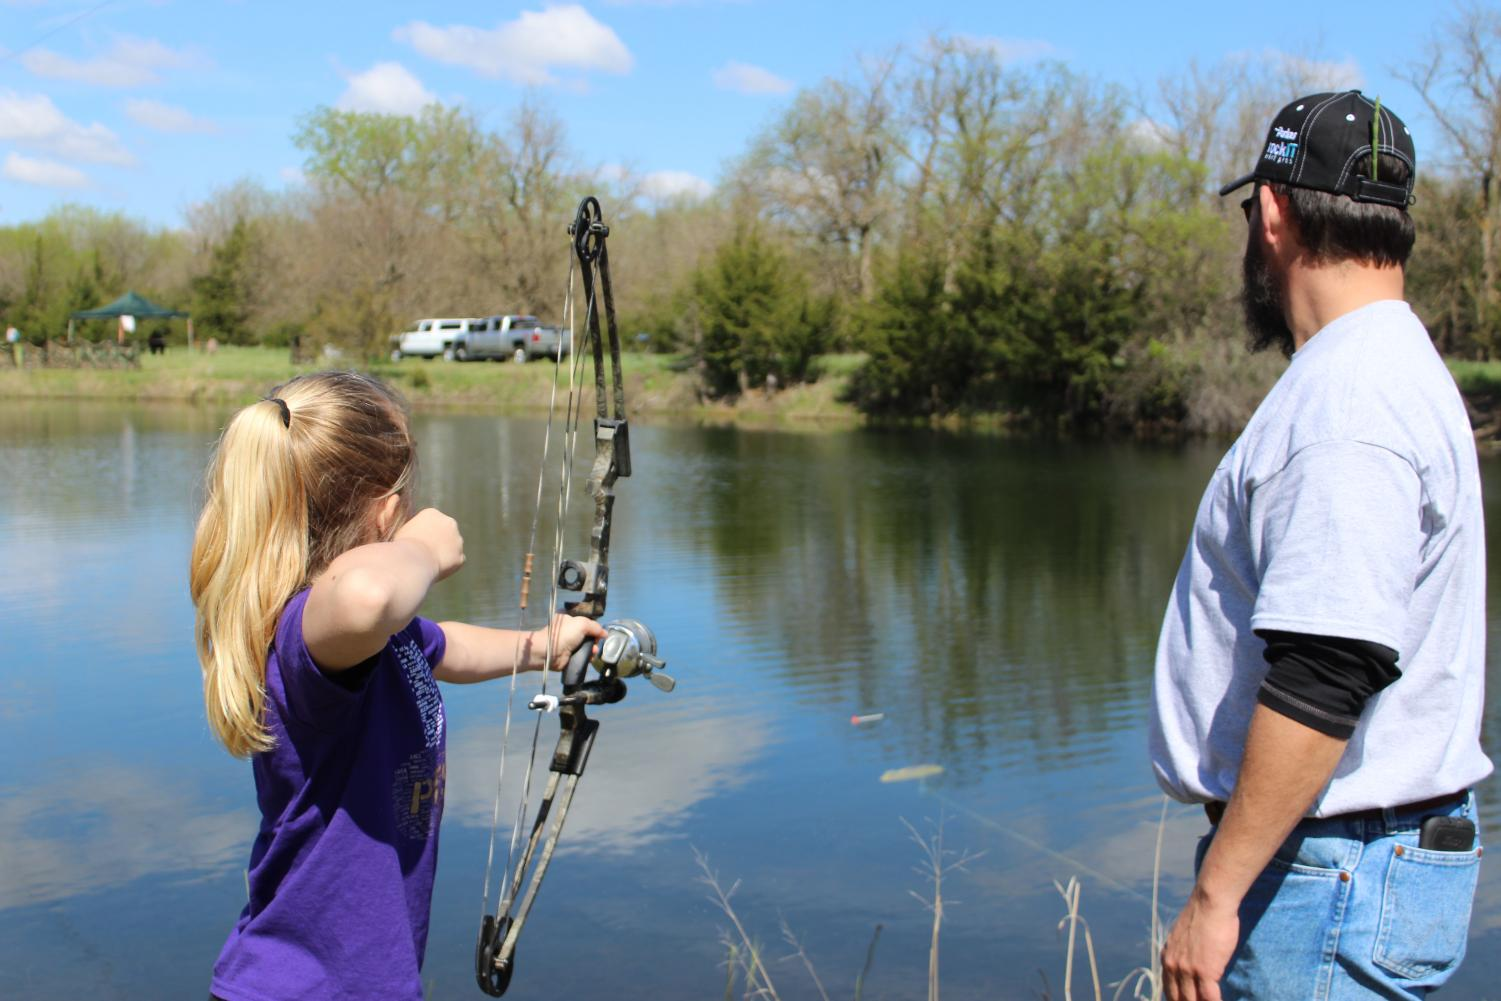 Kearney Outdoor Exploration Expo volunteer instructs student how to use bowfishing equipment.